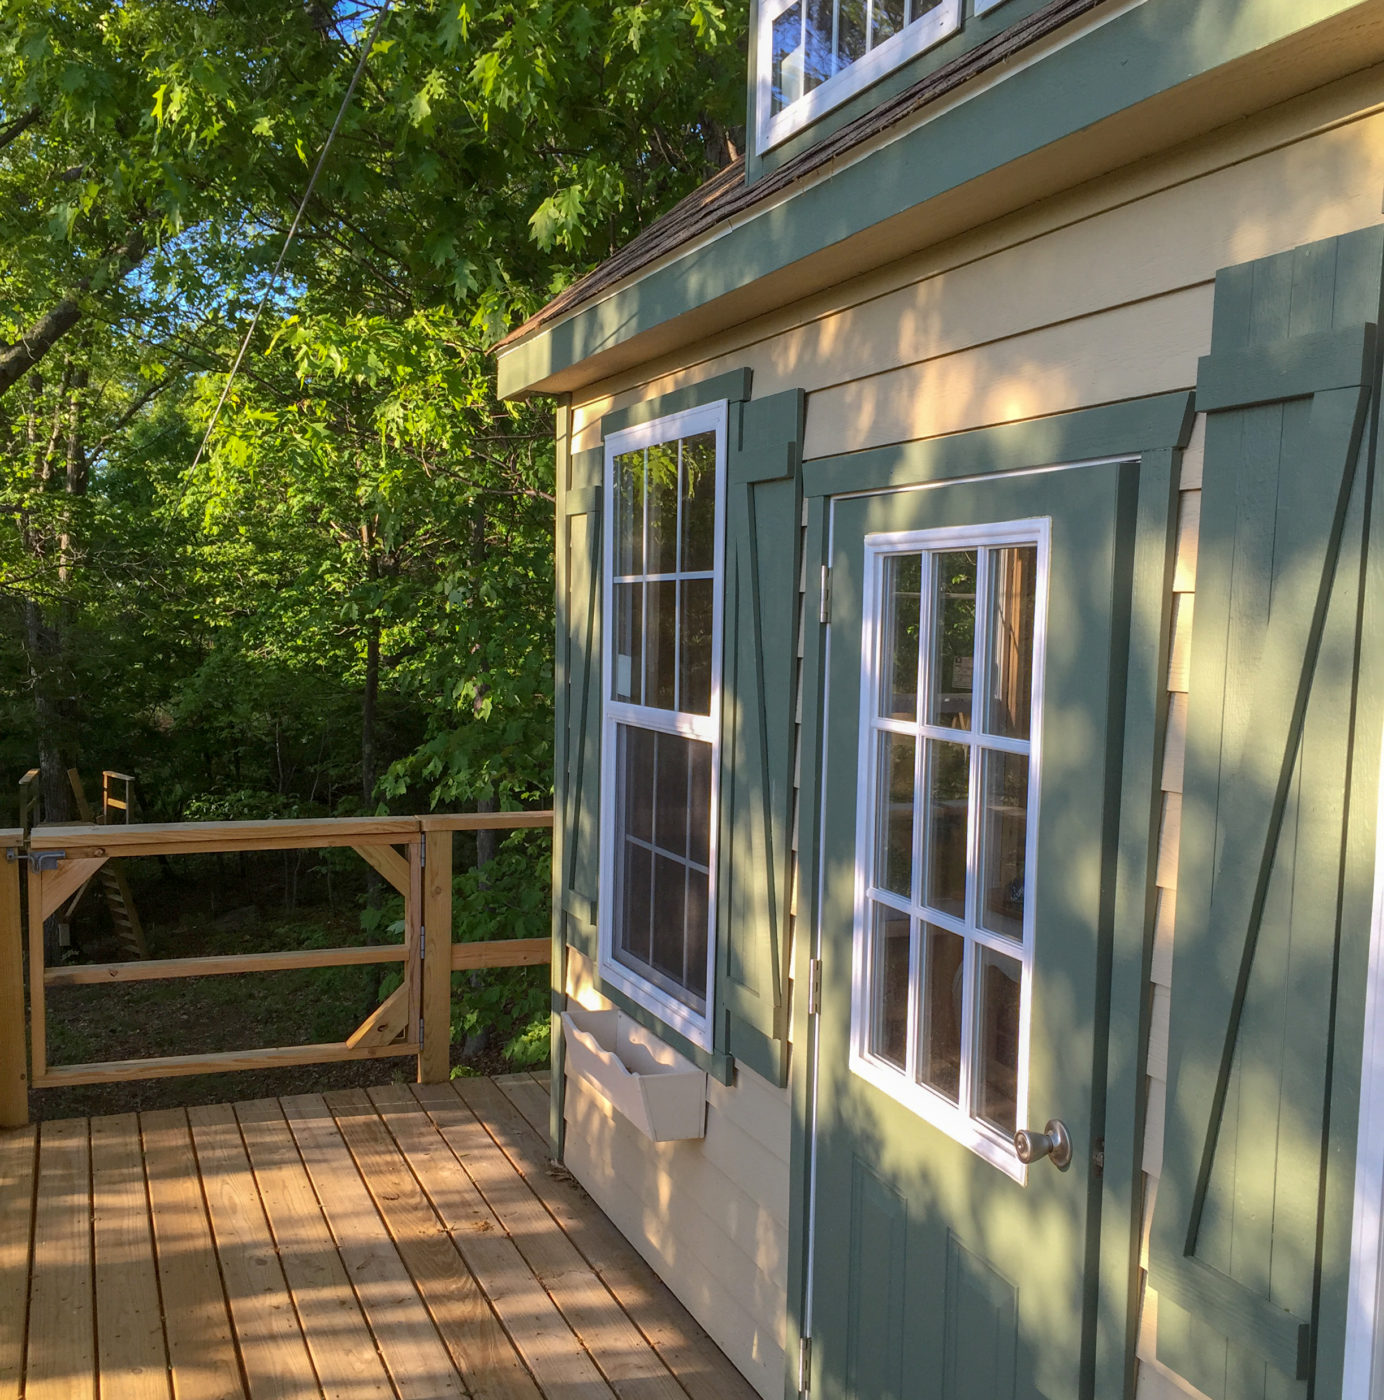 outside the treehouse shed for sale in pa,nj